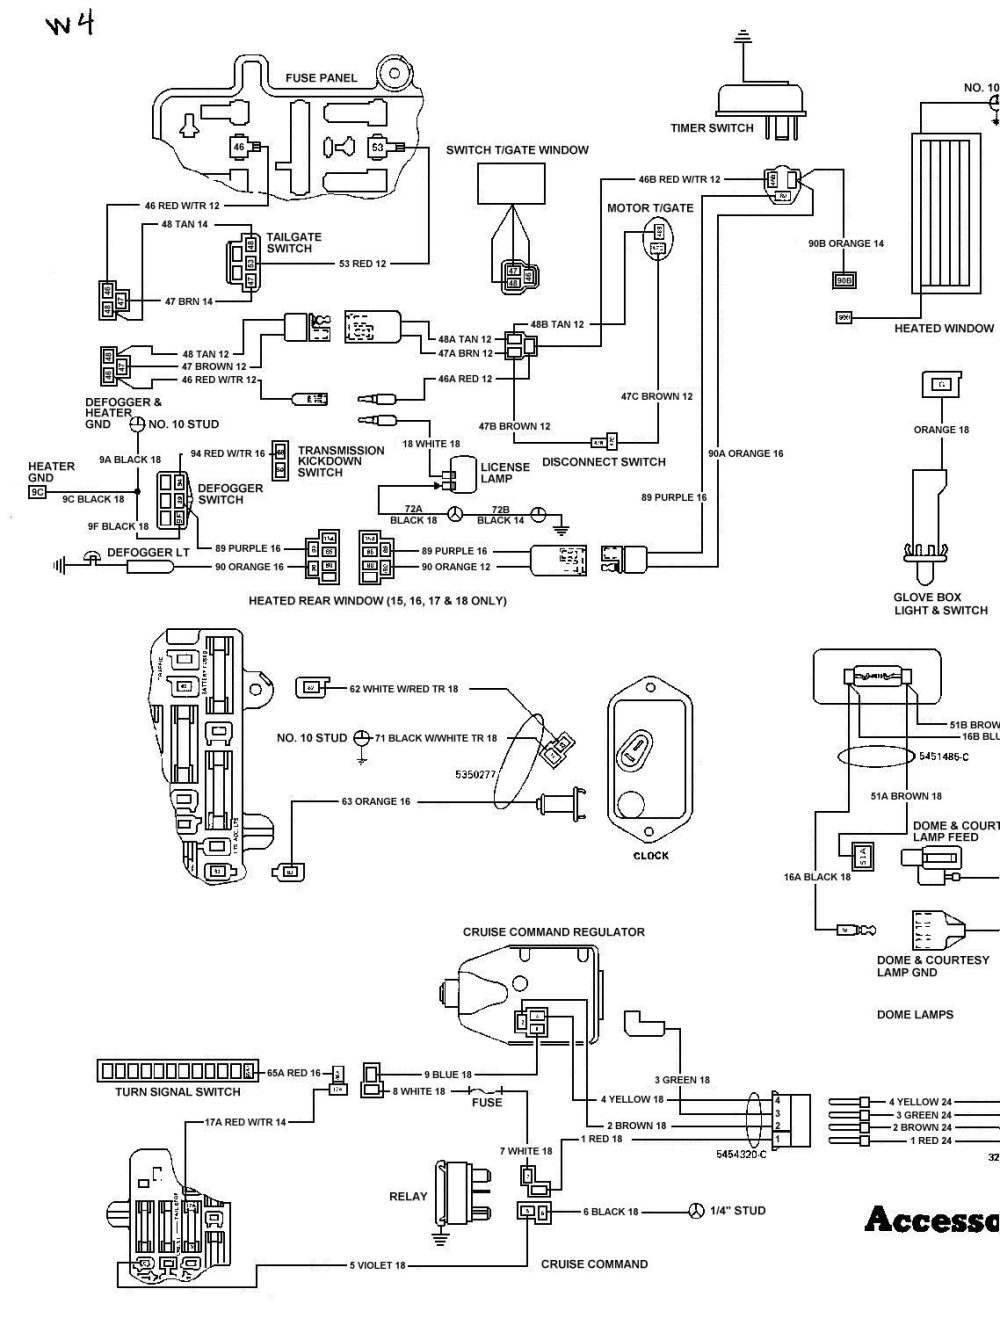 medium resolution of 78 fsj wiringdiagrampage4 tom oljeep collins fsj wiring page 78 fsj wiringdiagrampage4 1979 jeep cj7 starter wiring diagram